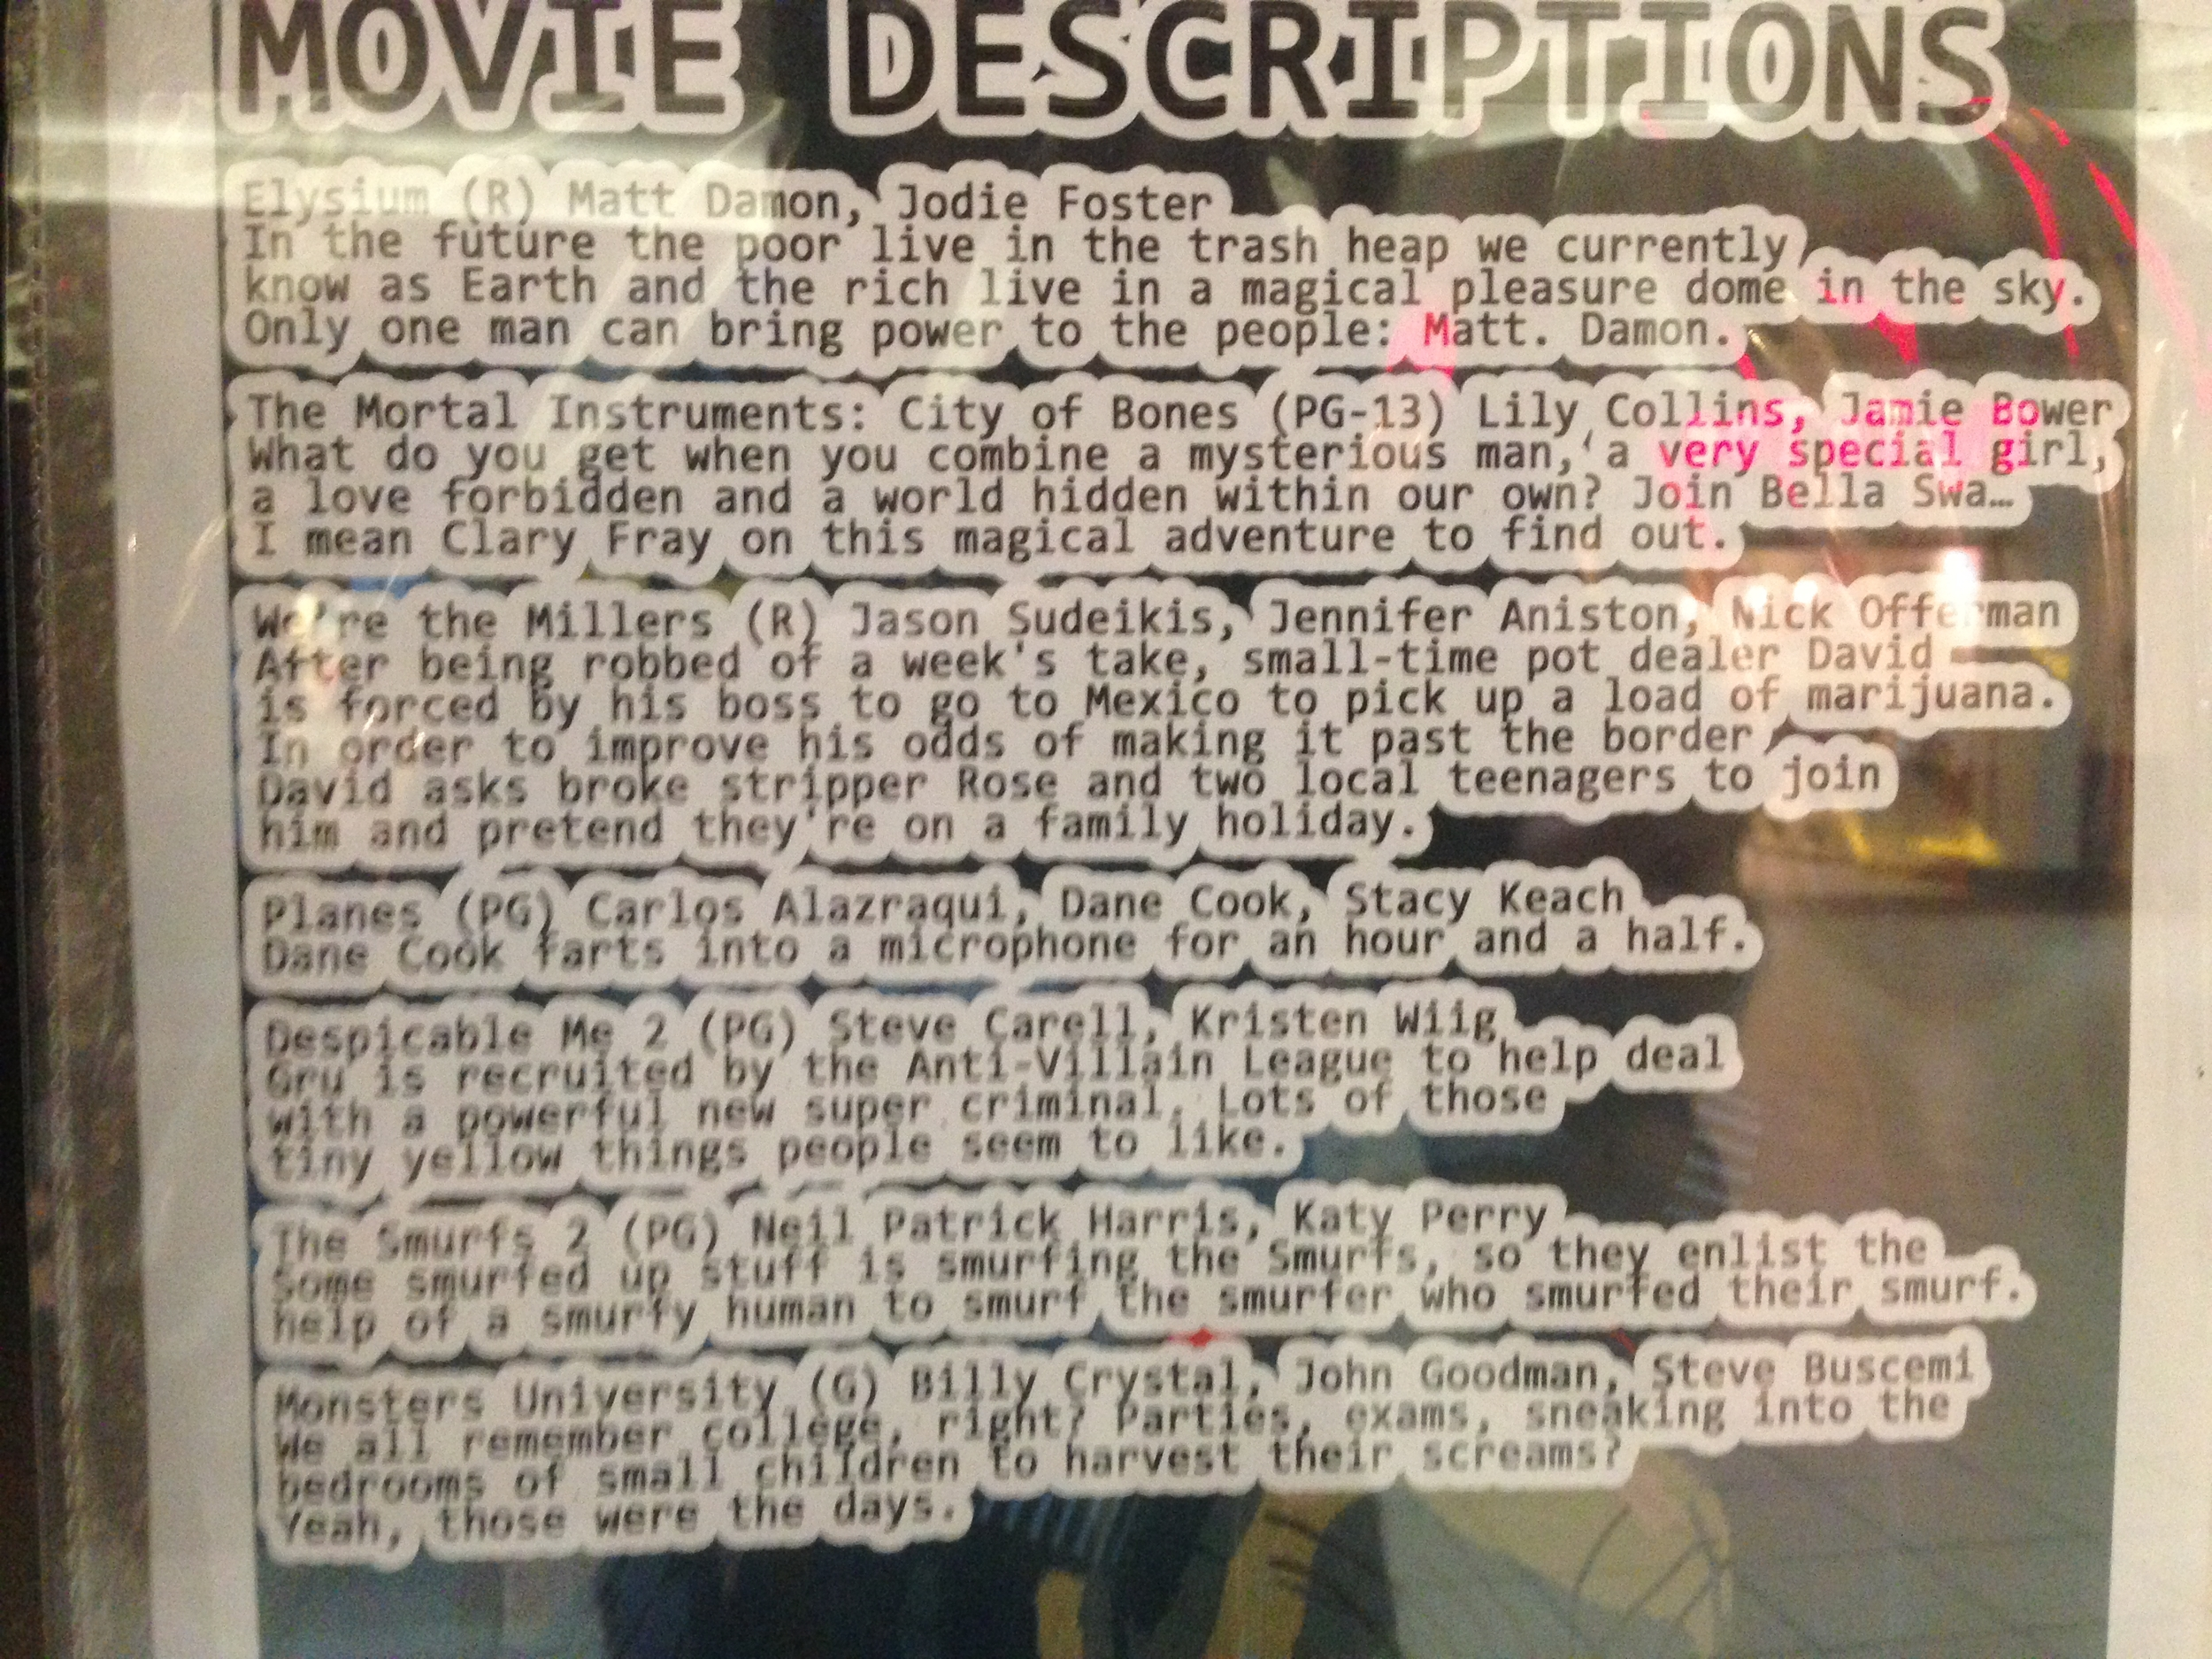 Remember when we recommended the lovely movie descriptions over at Silver Cinemas in the mall? Yeah, we still love those darned things. Crack us up every time. Worth the price of admission just to read the heavily-stroked text.